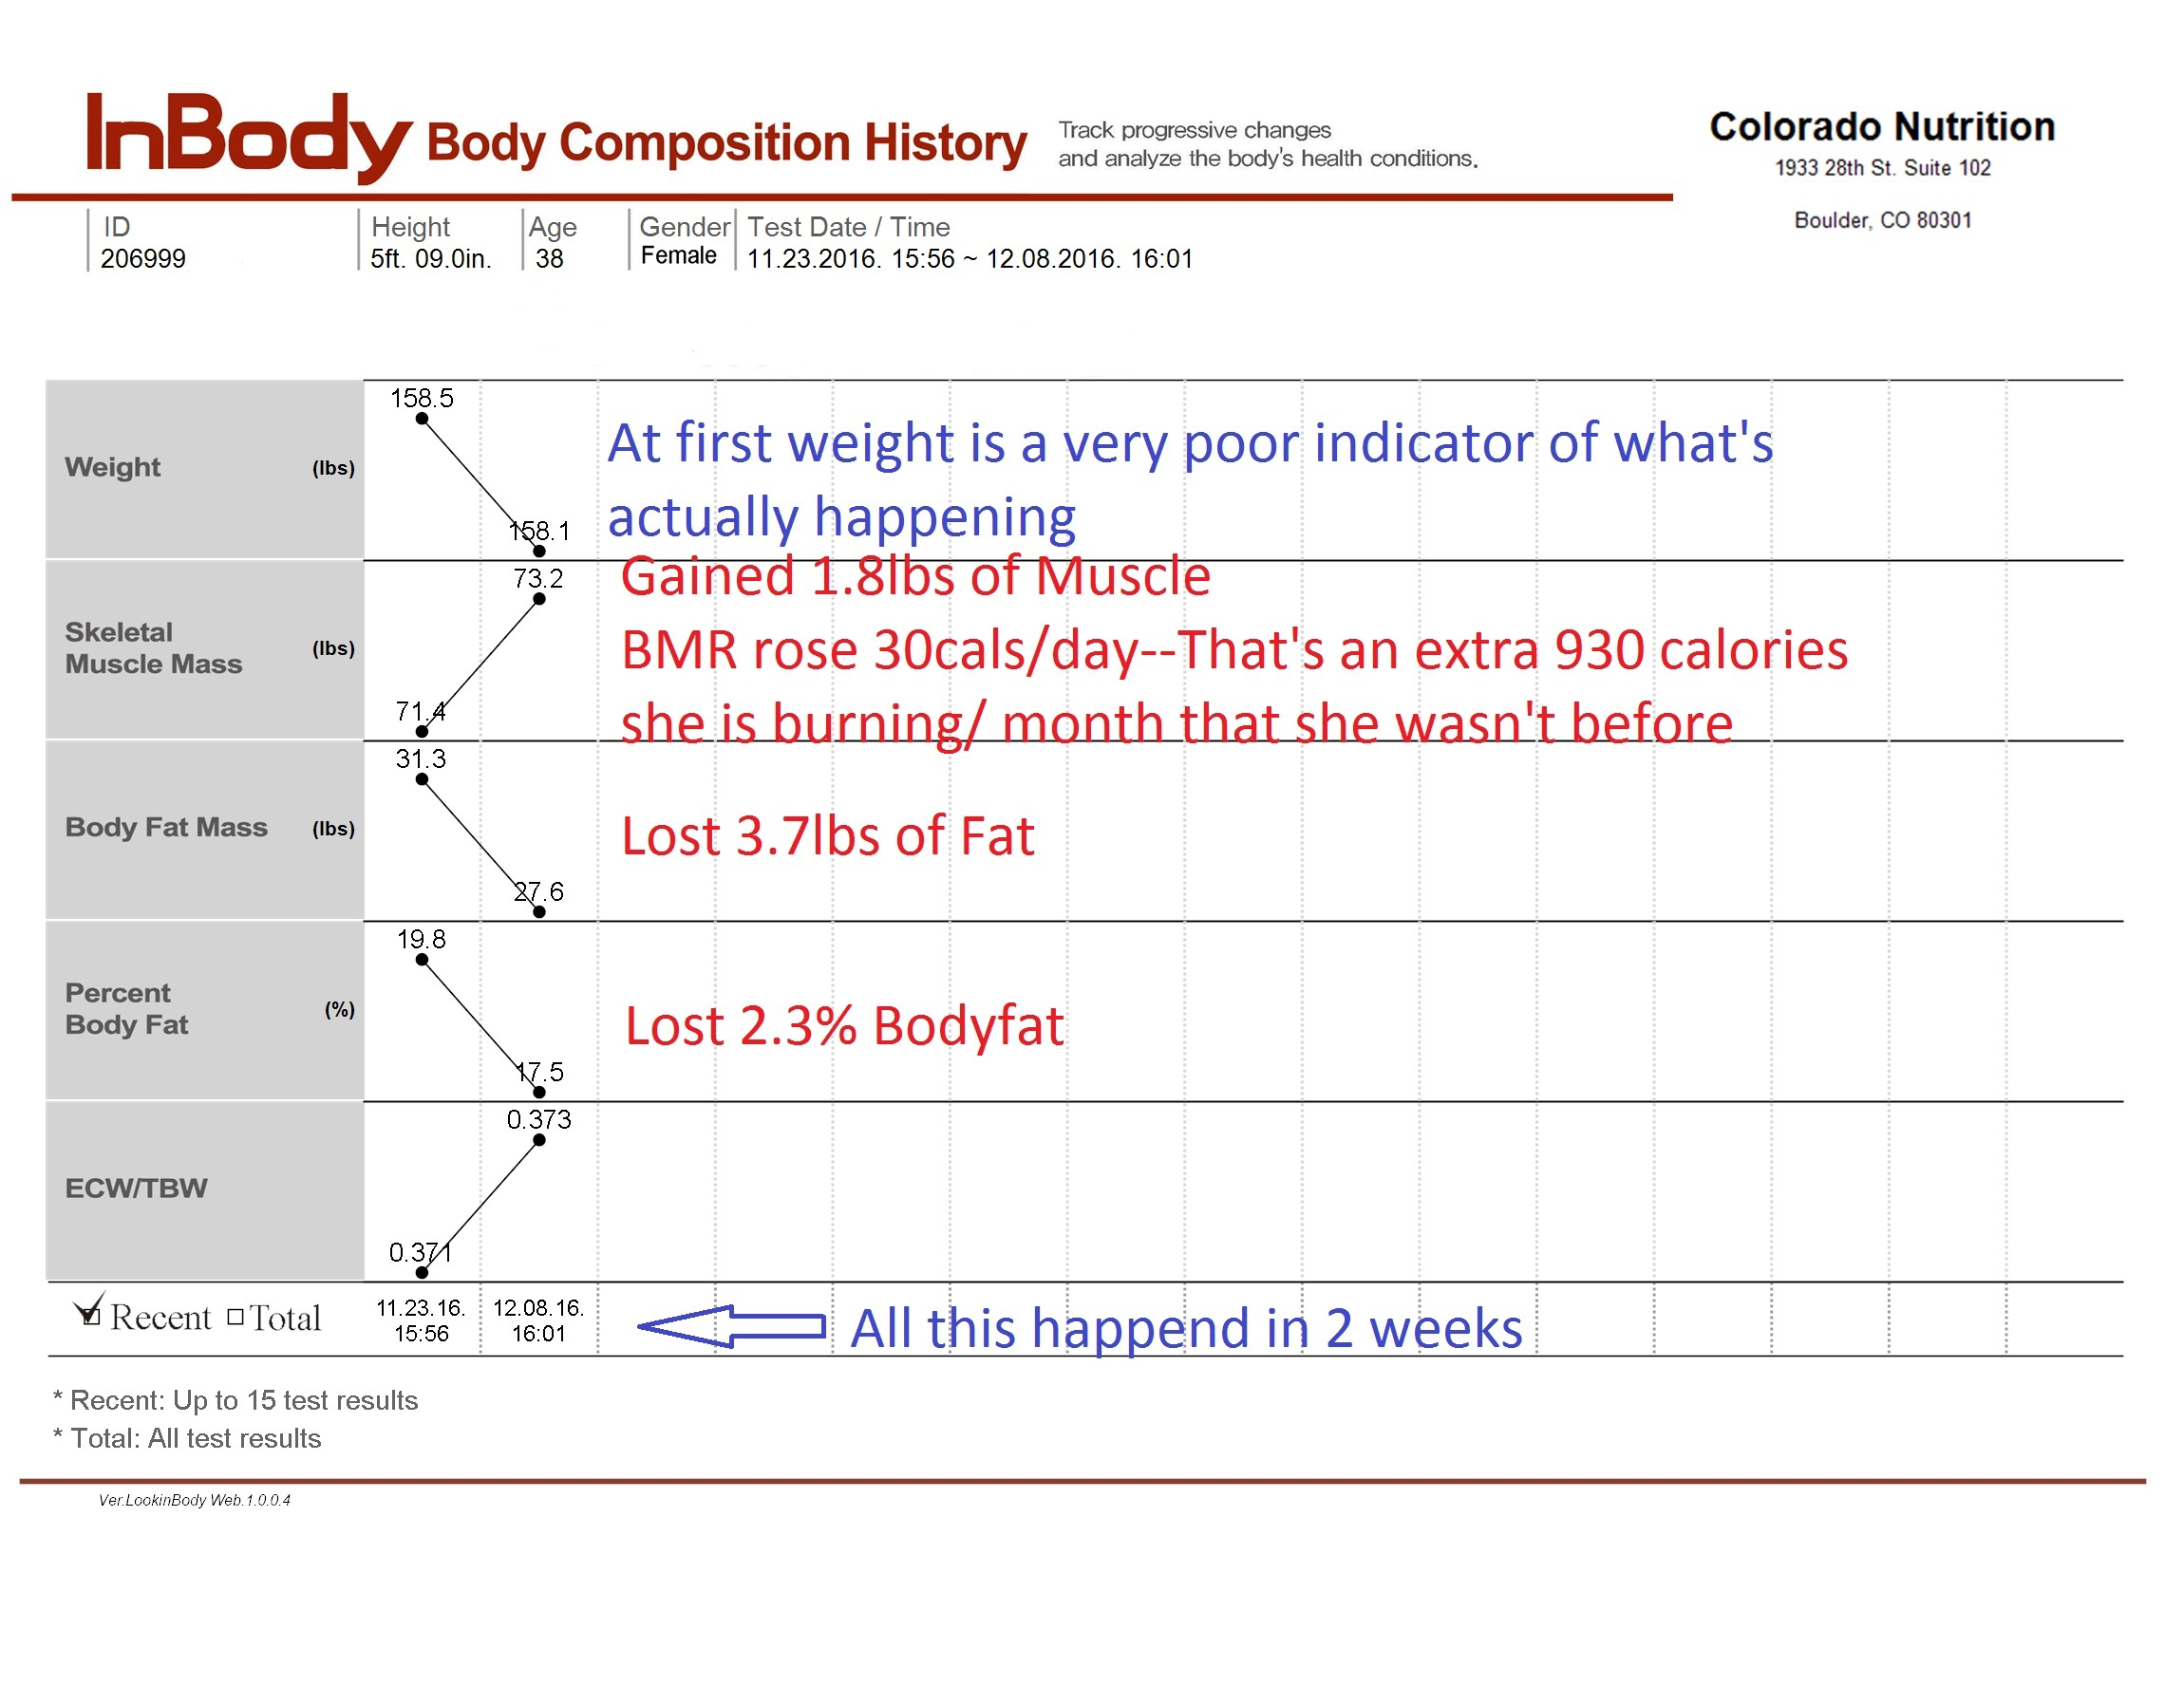 Nutrition results